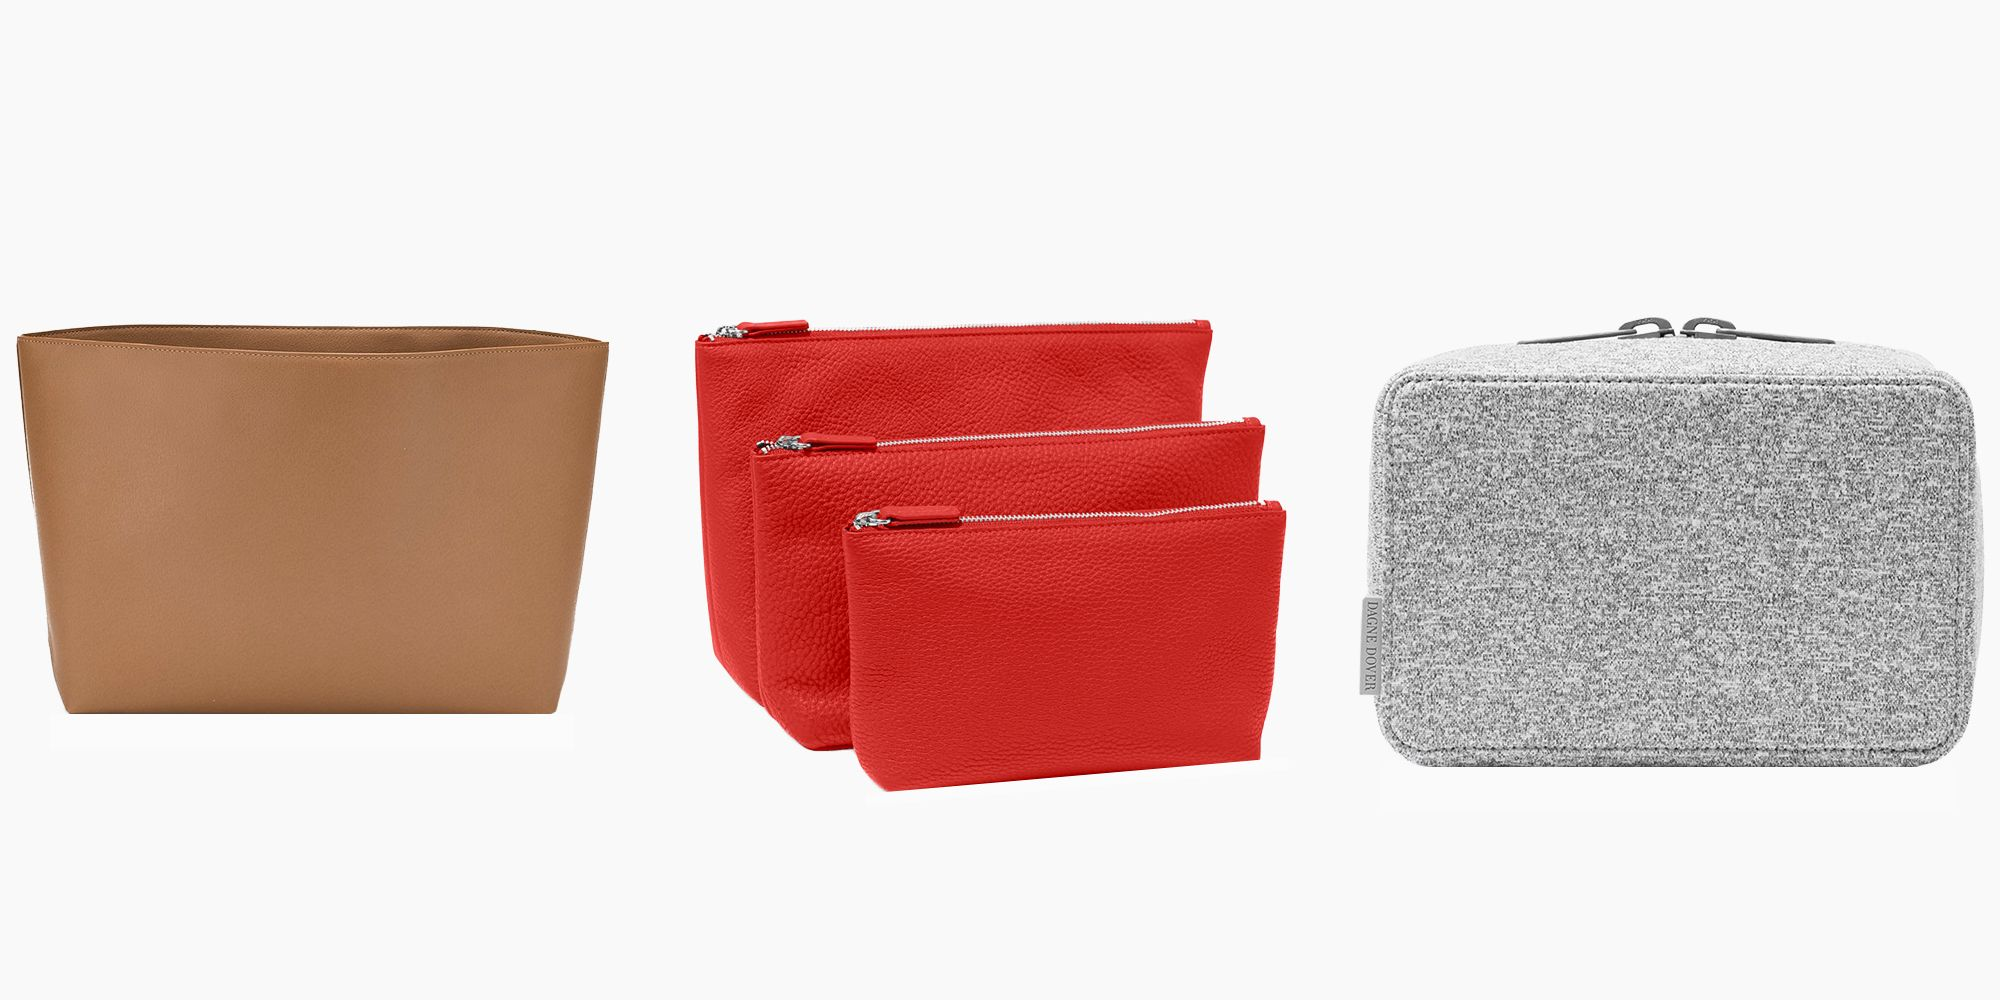 Best Purse Organizers for Women - 10 Purse Organizers That Keep Your  LifeTogether